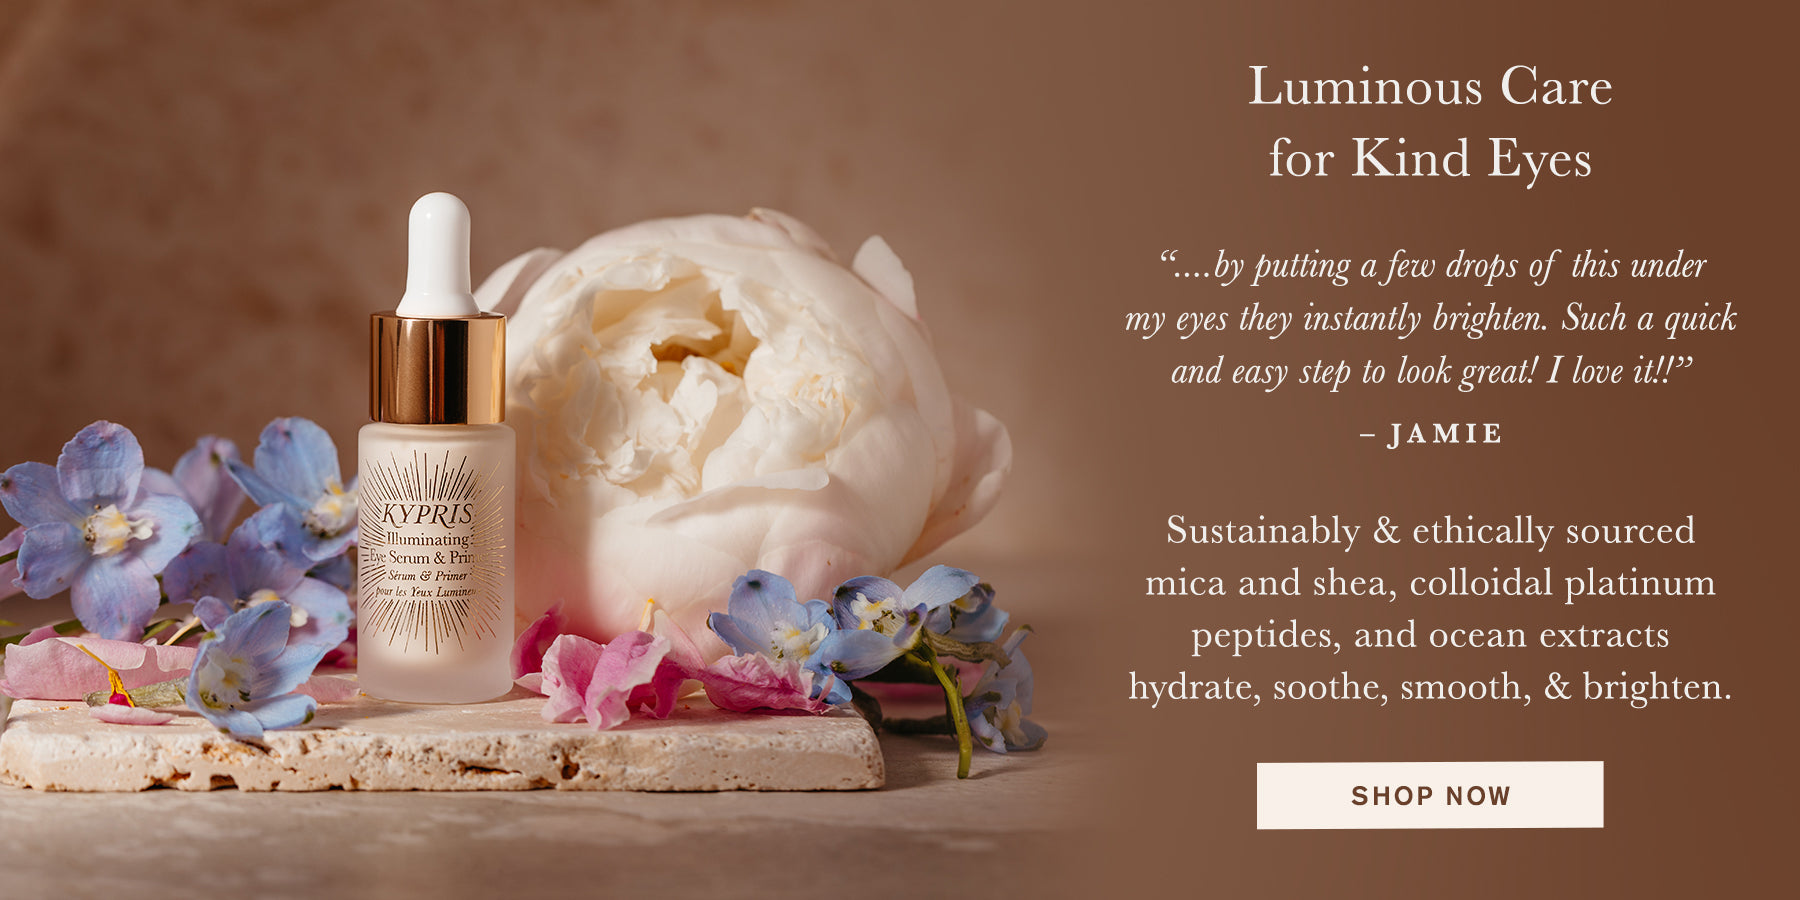 Luminos Care for Kind Eyes